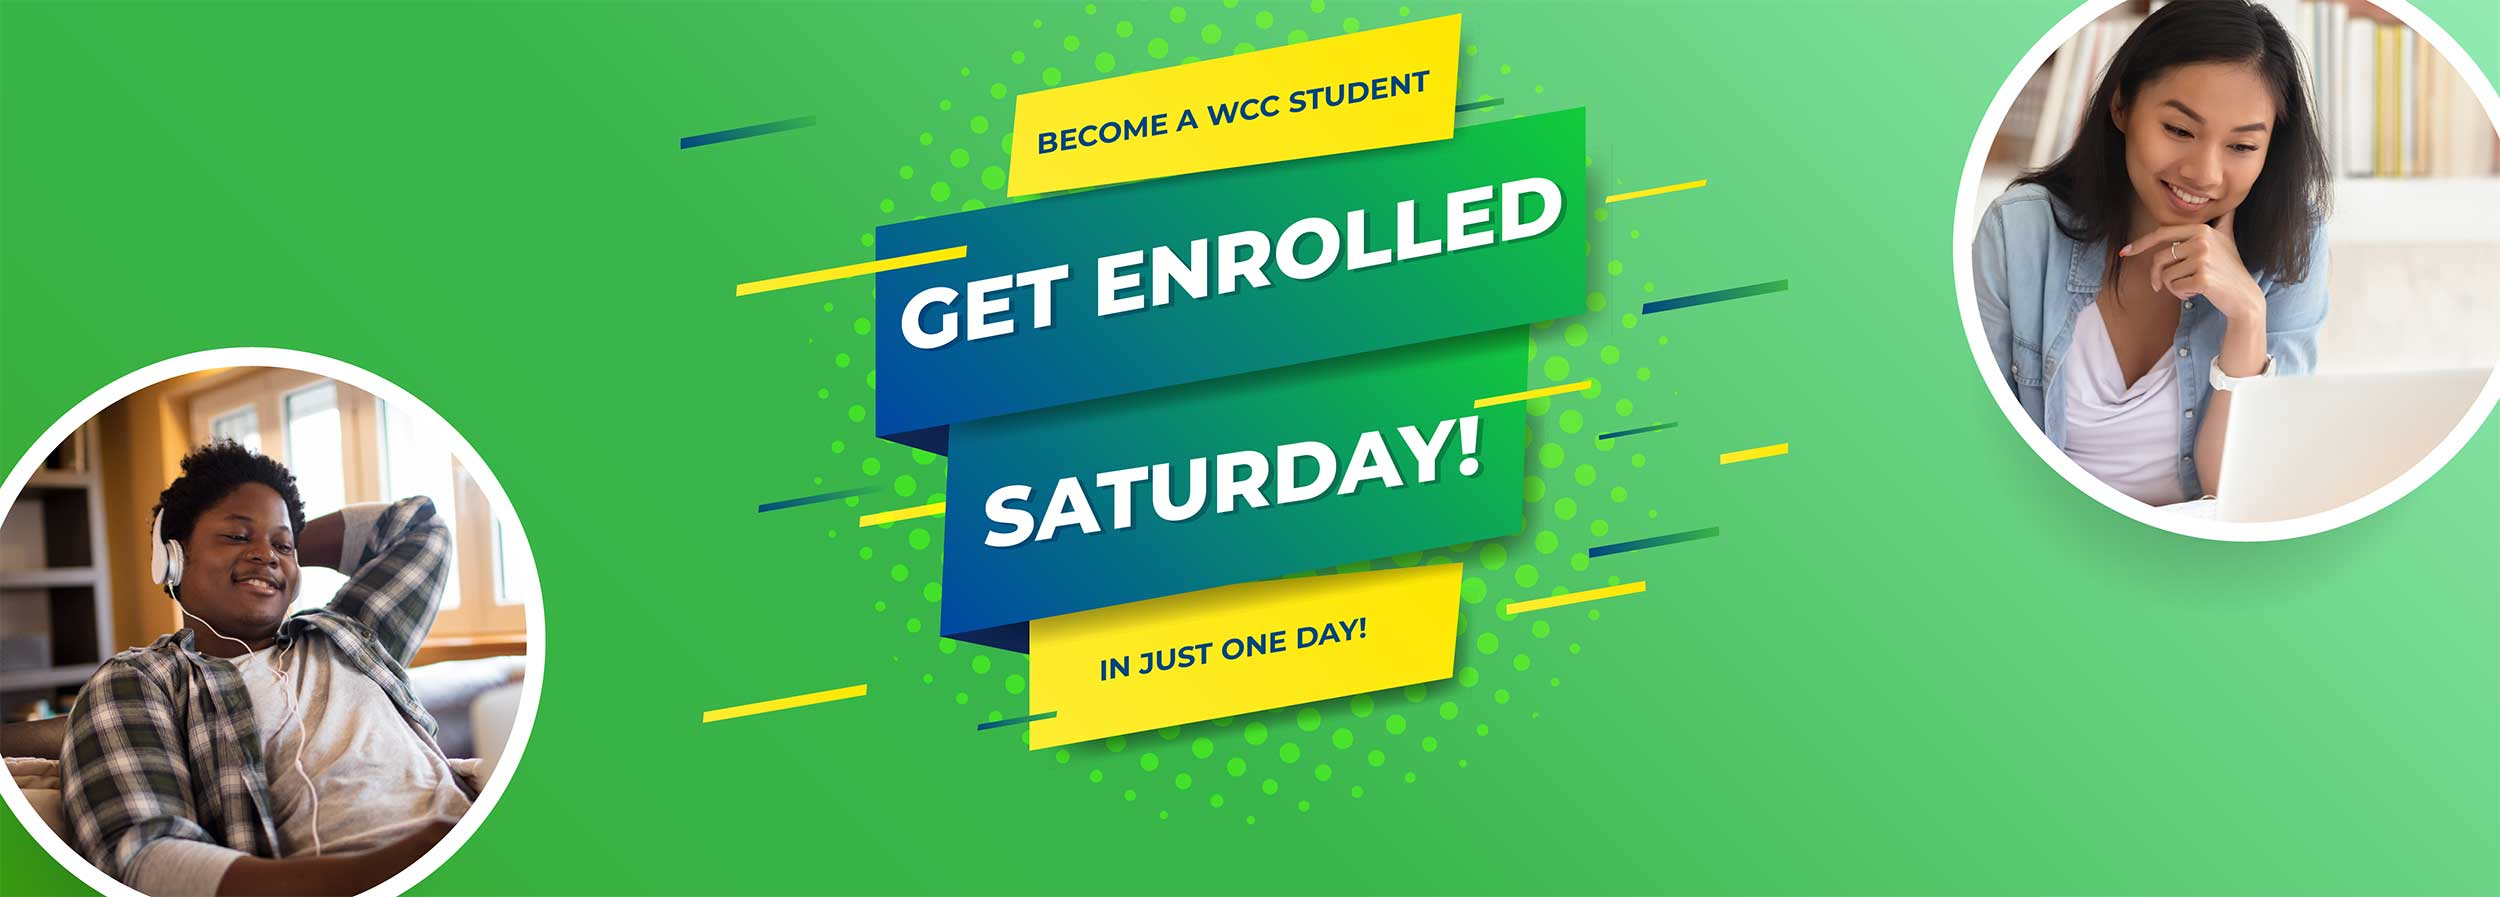 Become a Student in Just One Day!